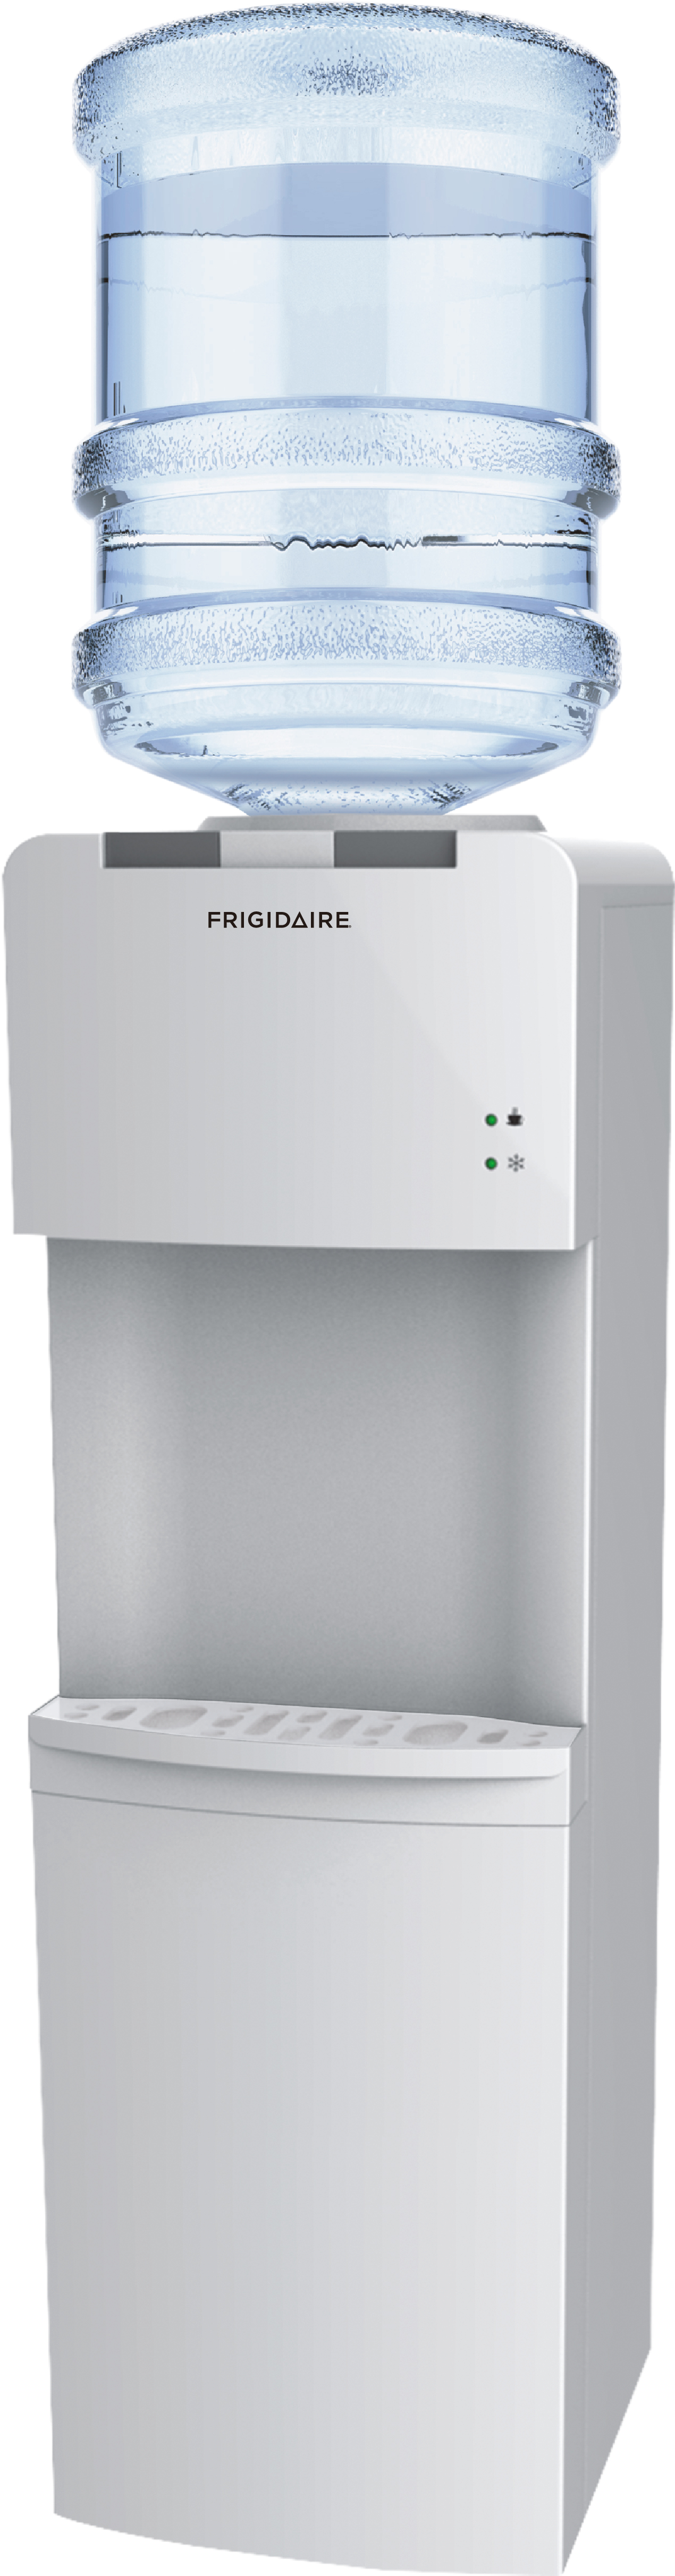 Frigidaire Water Cooler/Dispenser